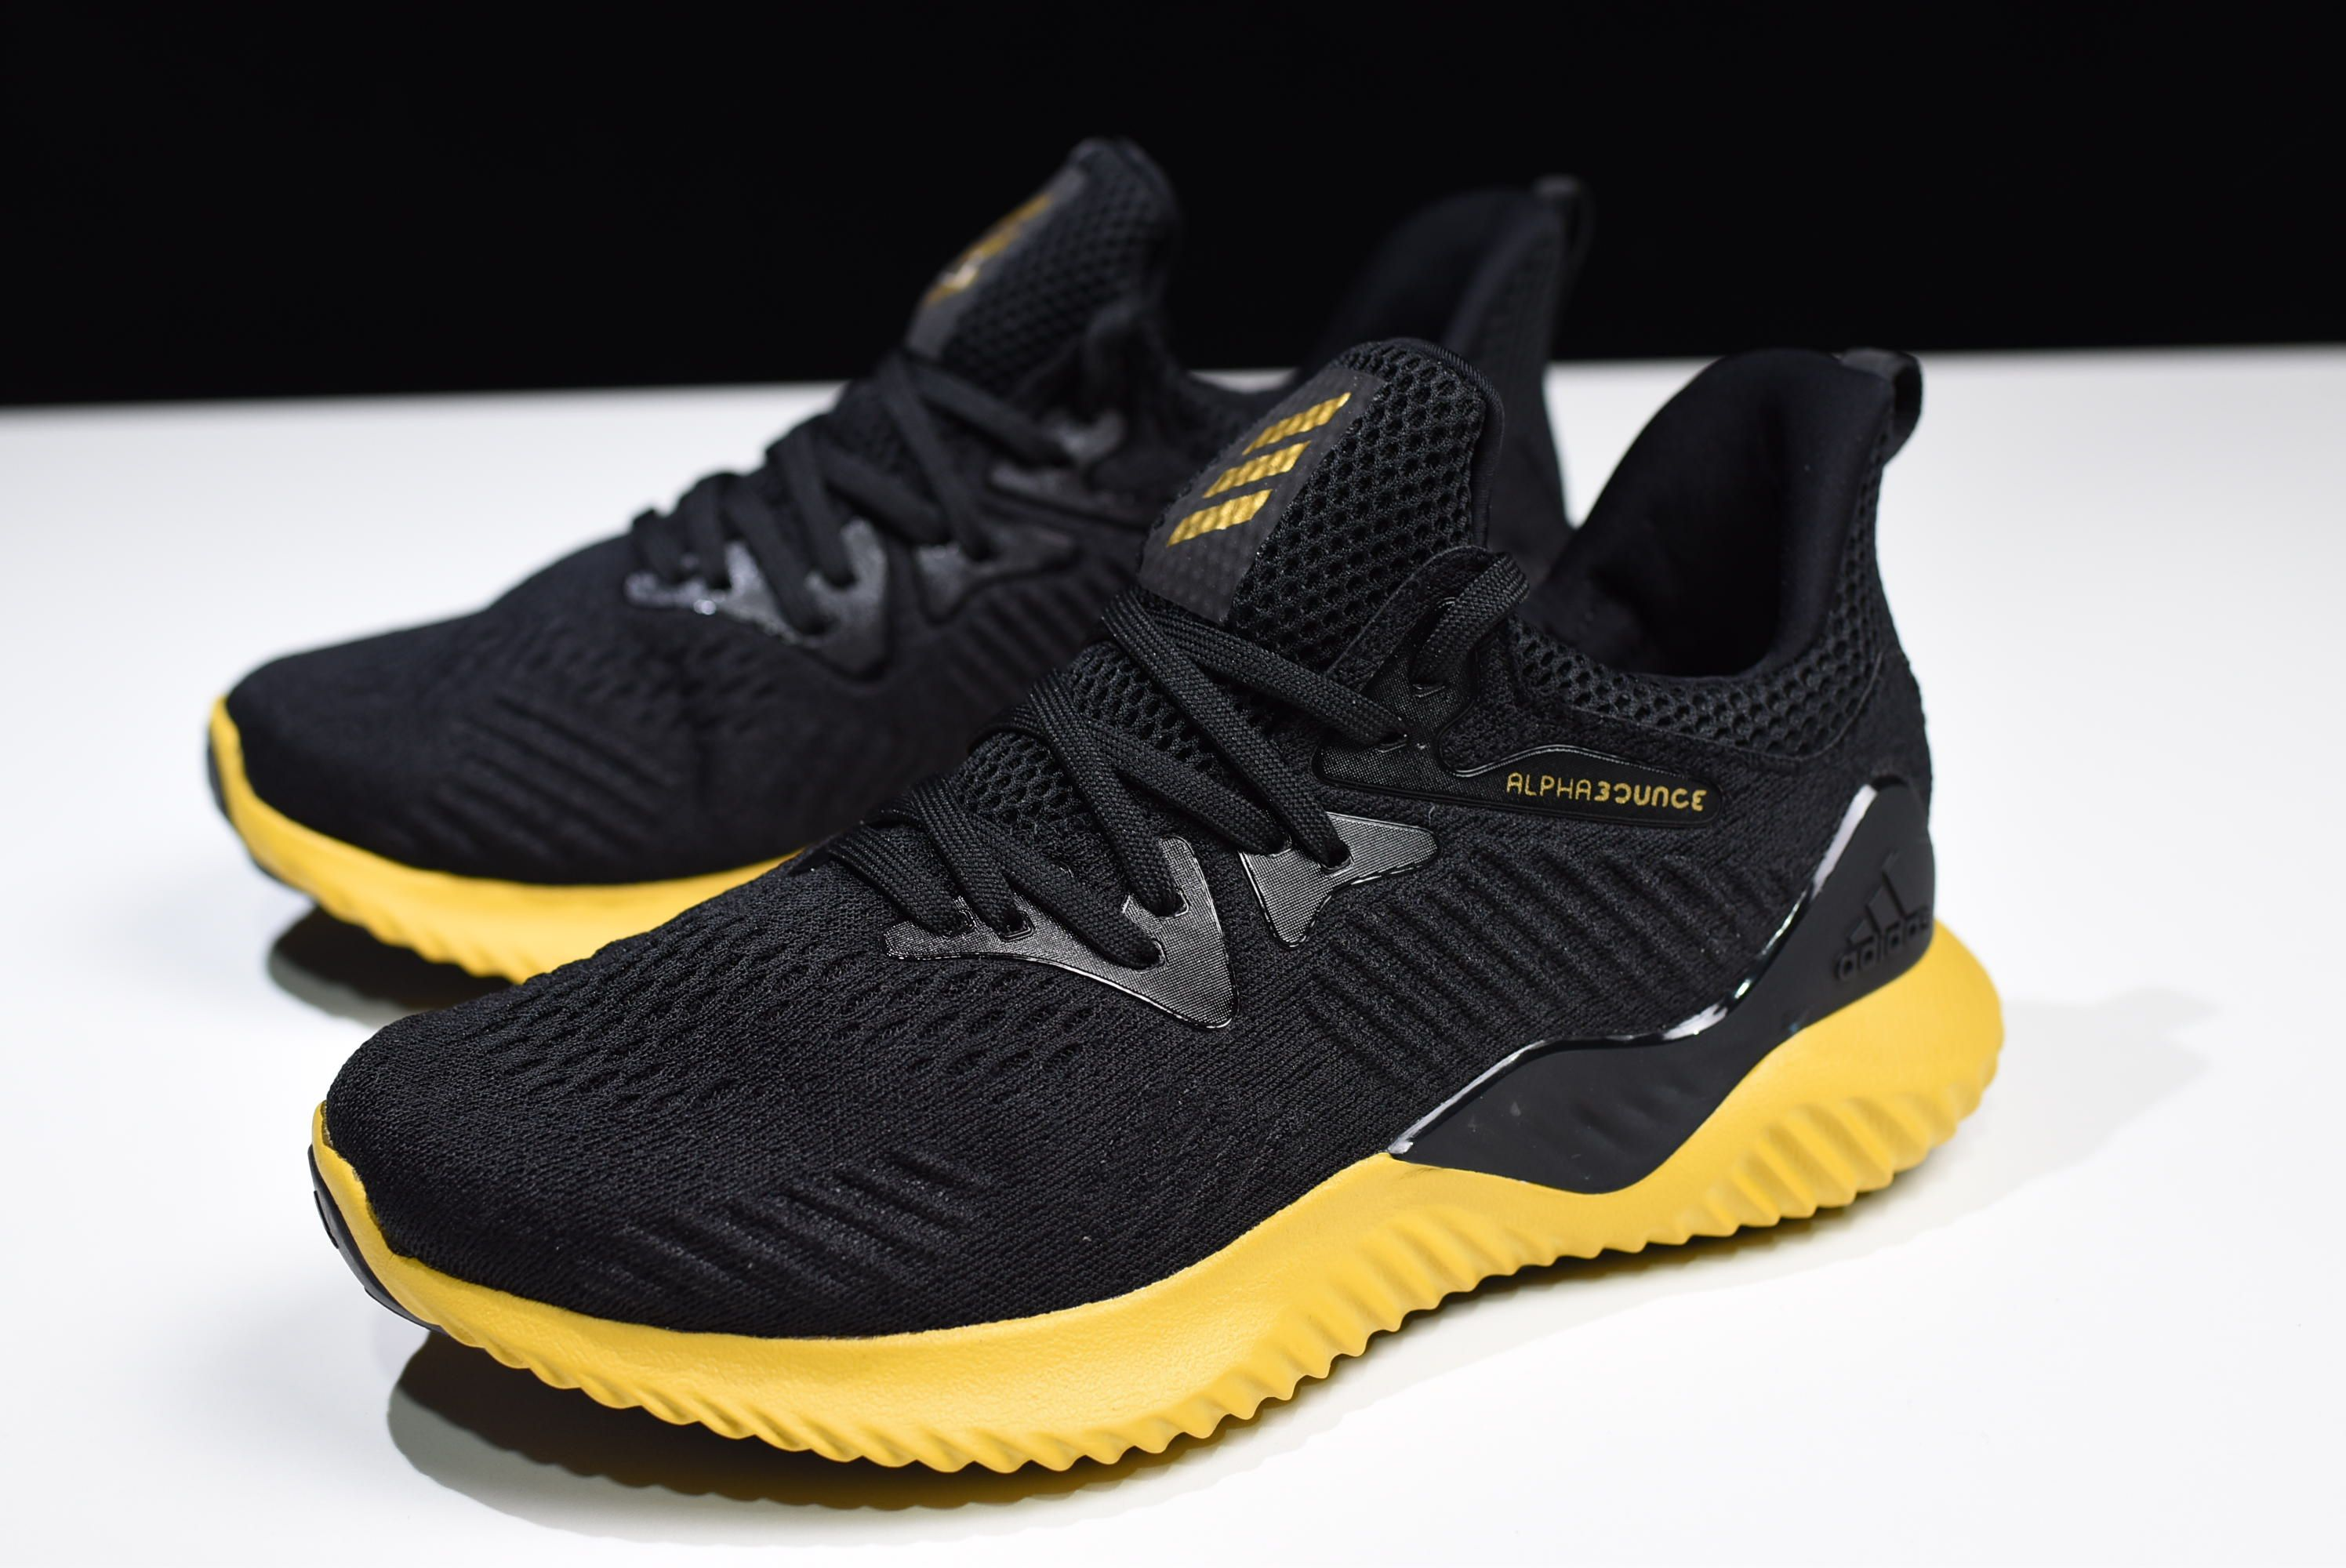 New Adidas Alphabounce Em M Black Yellow Cg5555 With Images Adidas